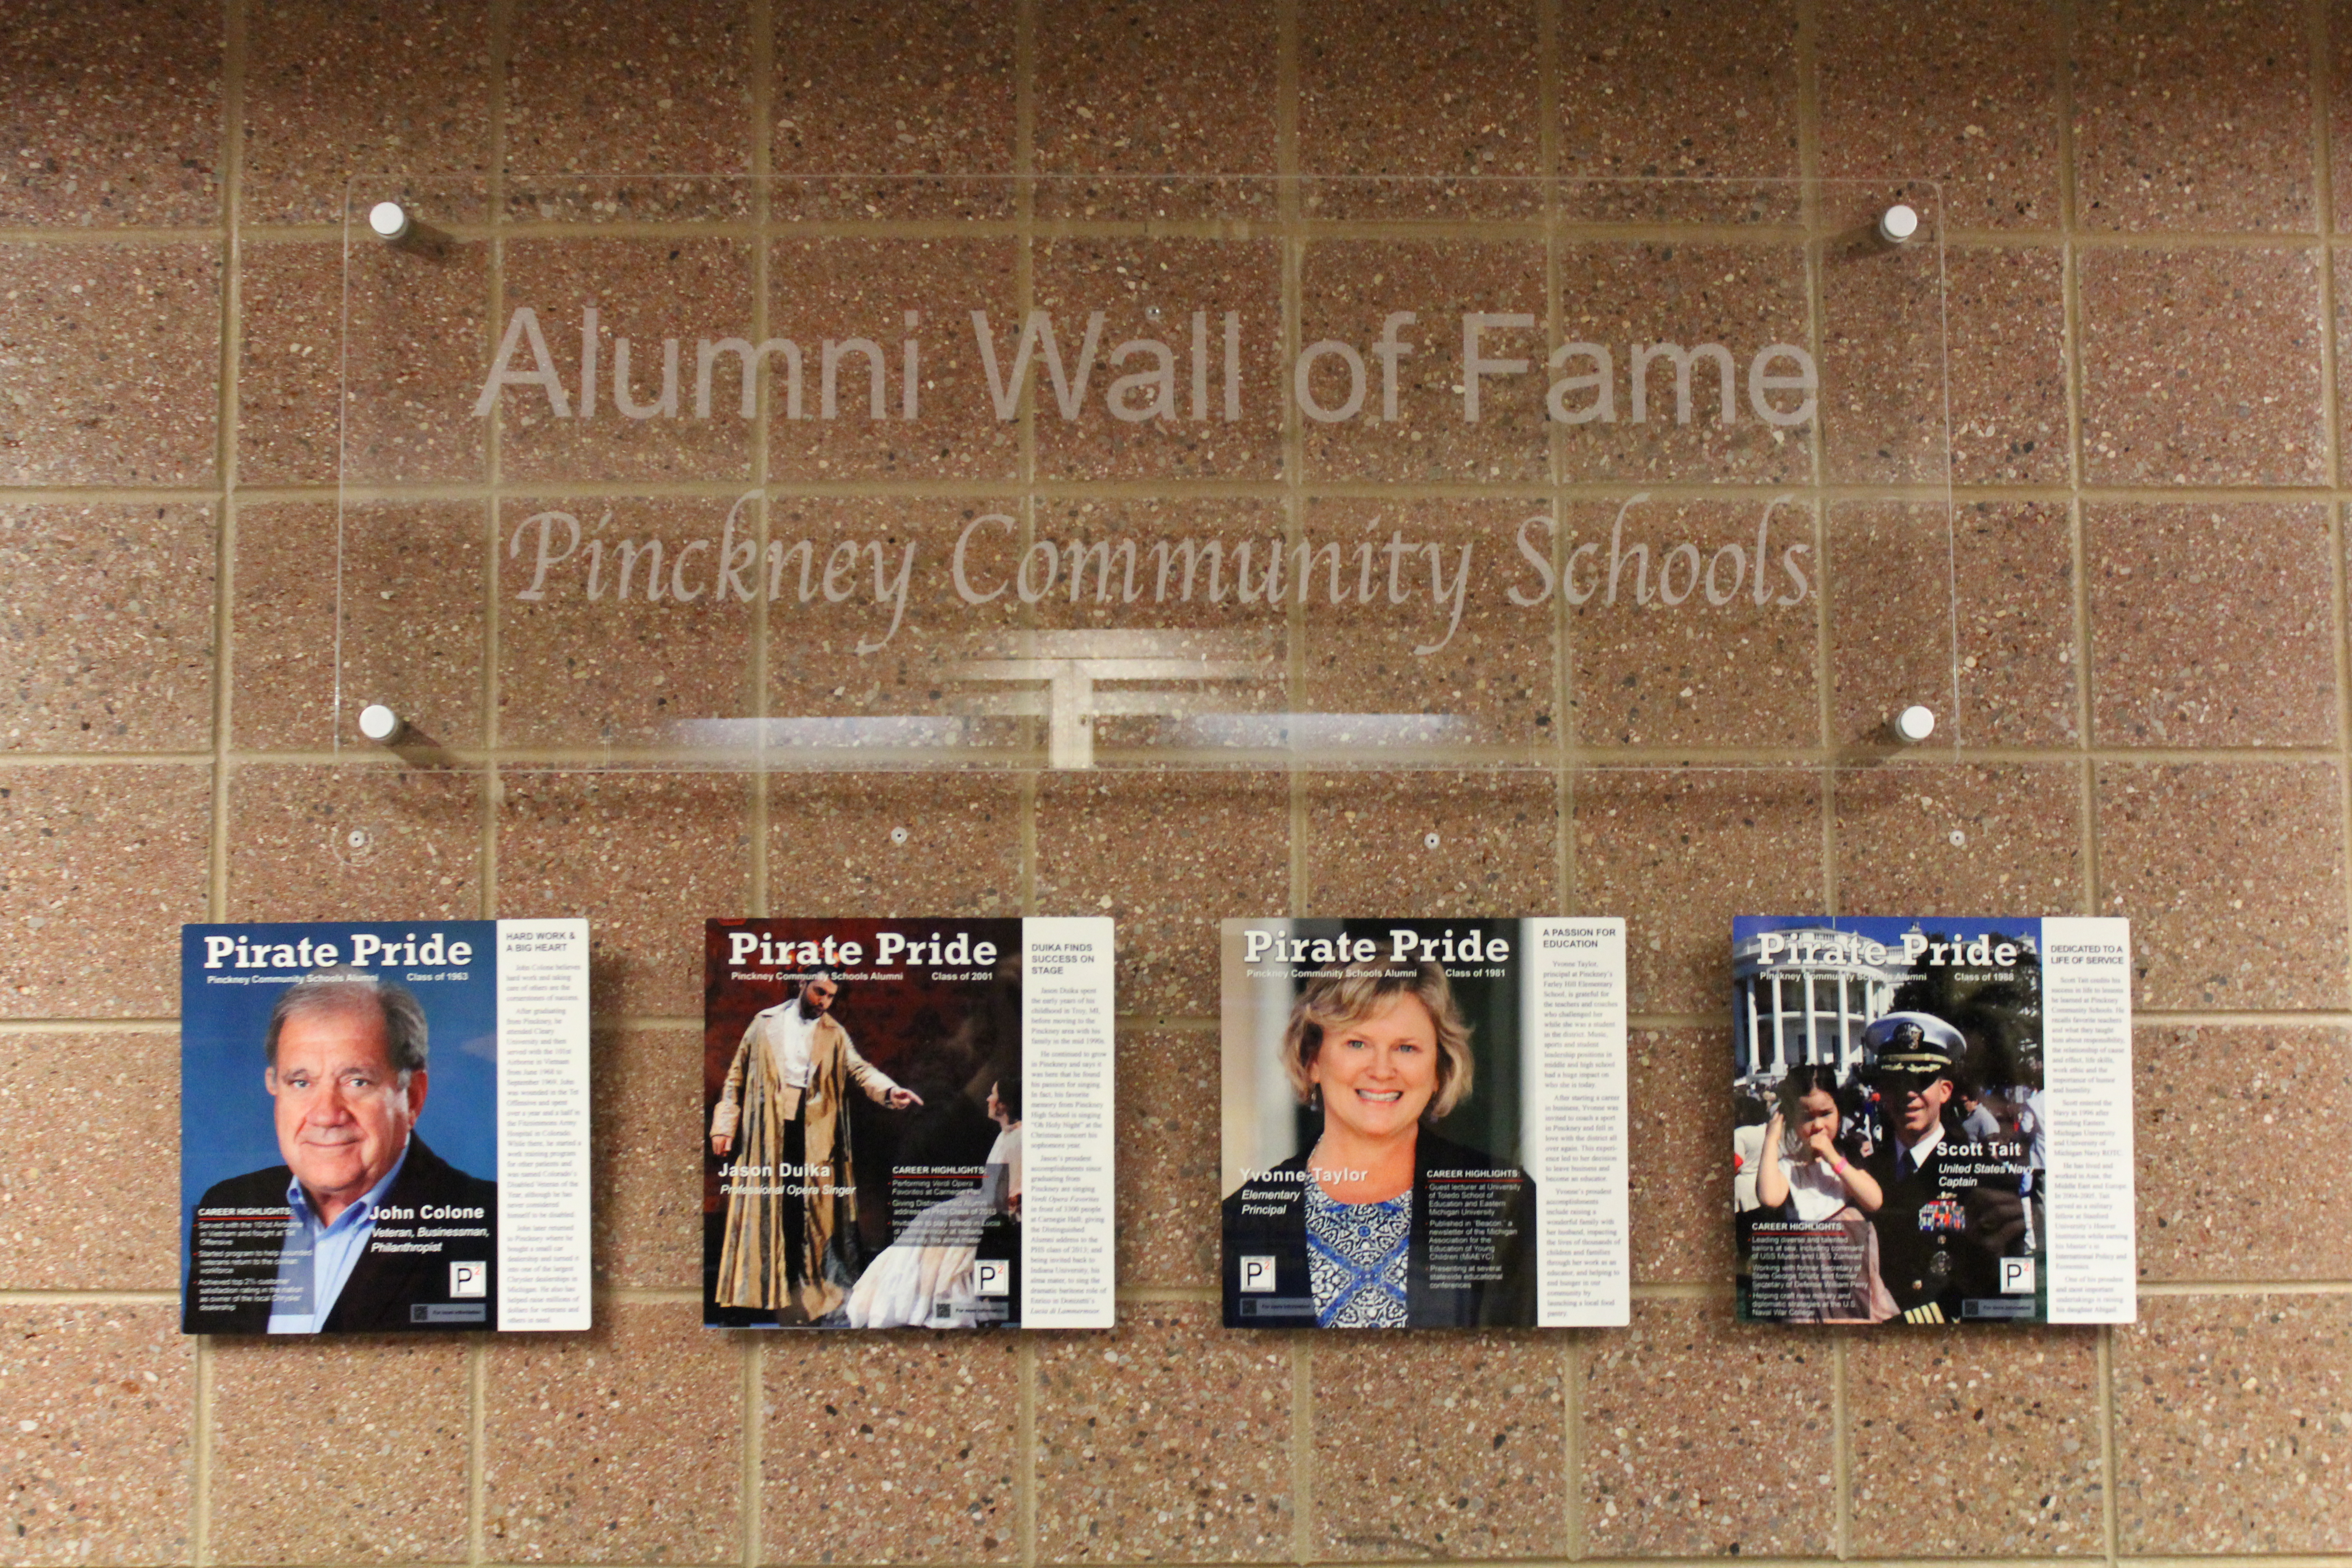 Wall of fame overview